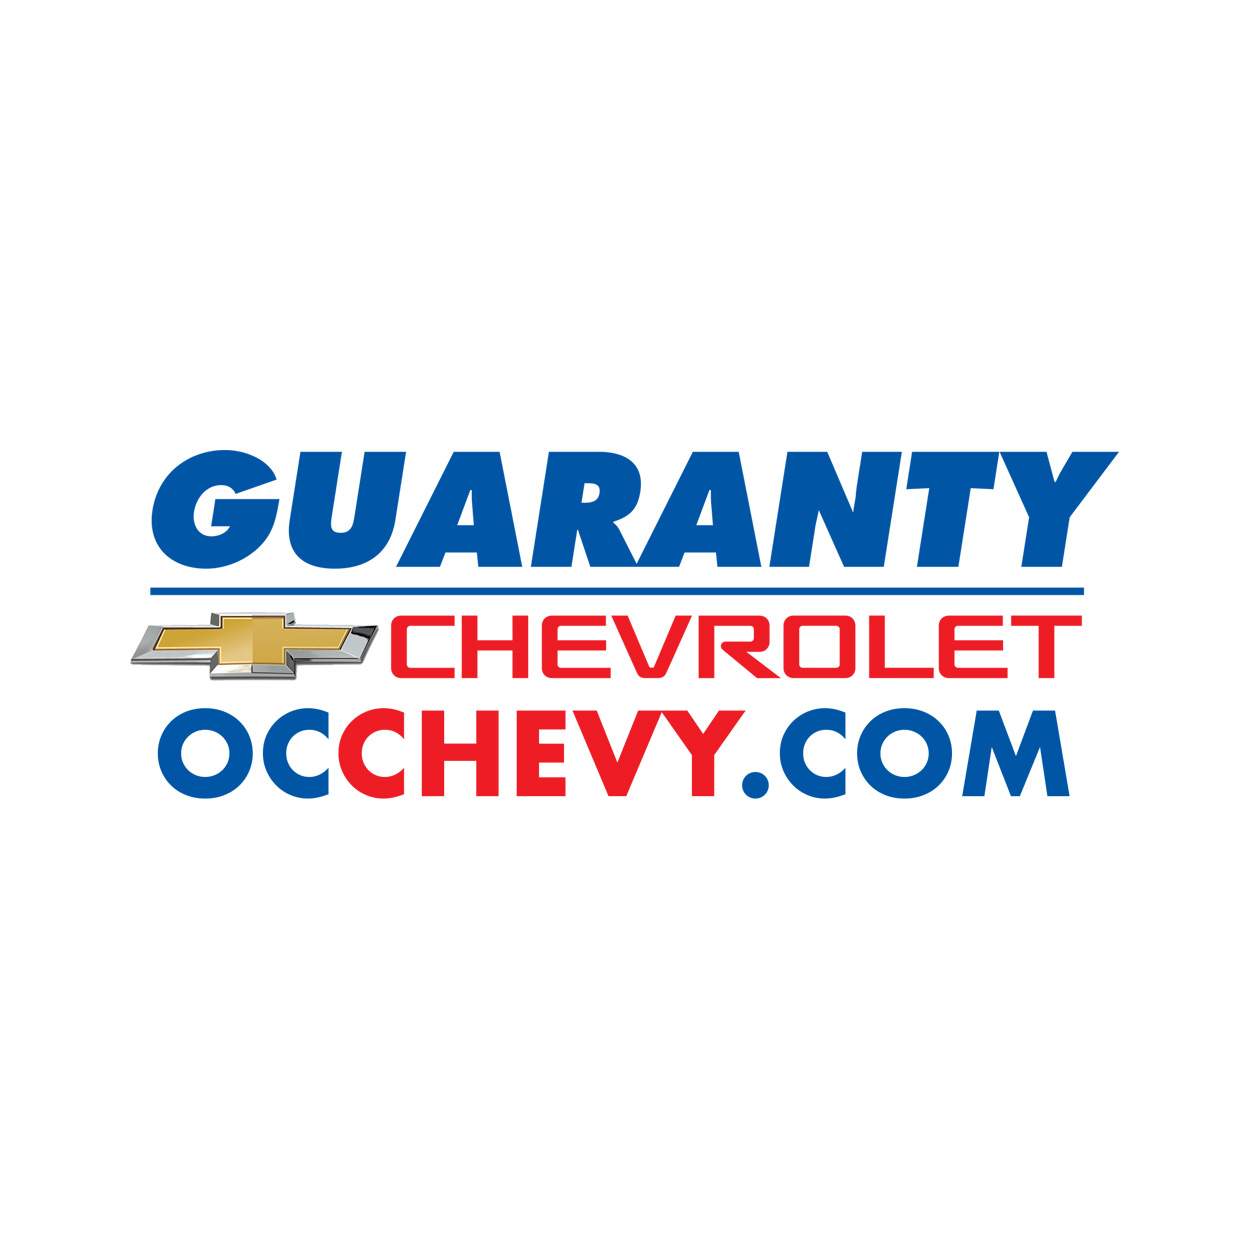 Image result for guarantee chevy